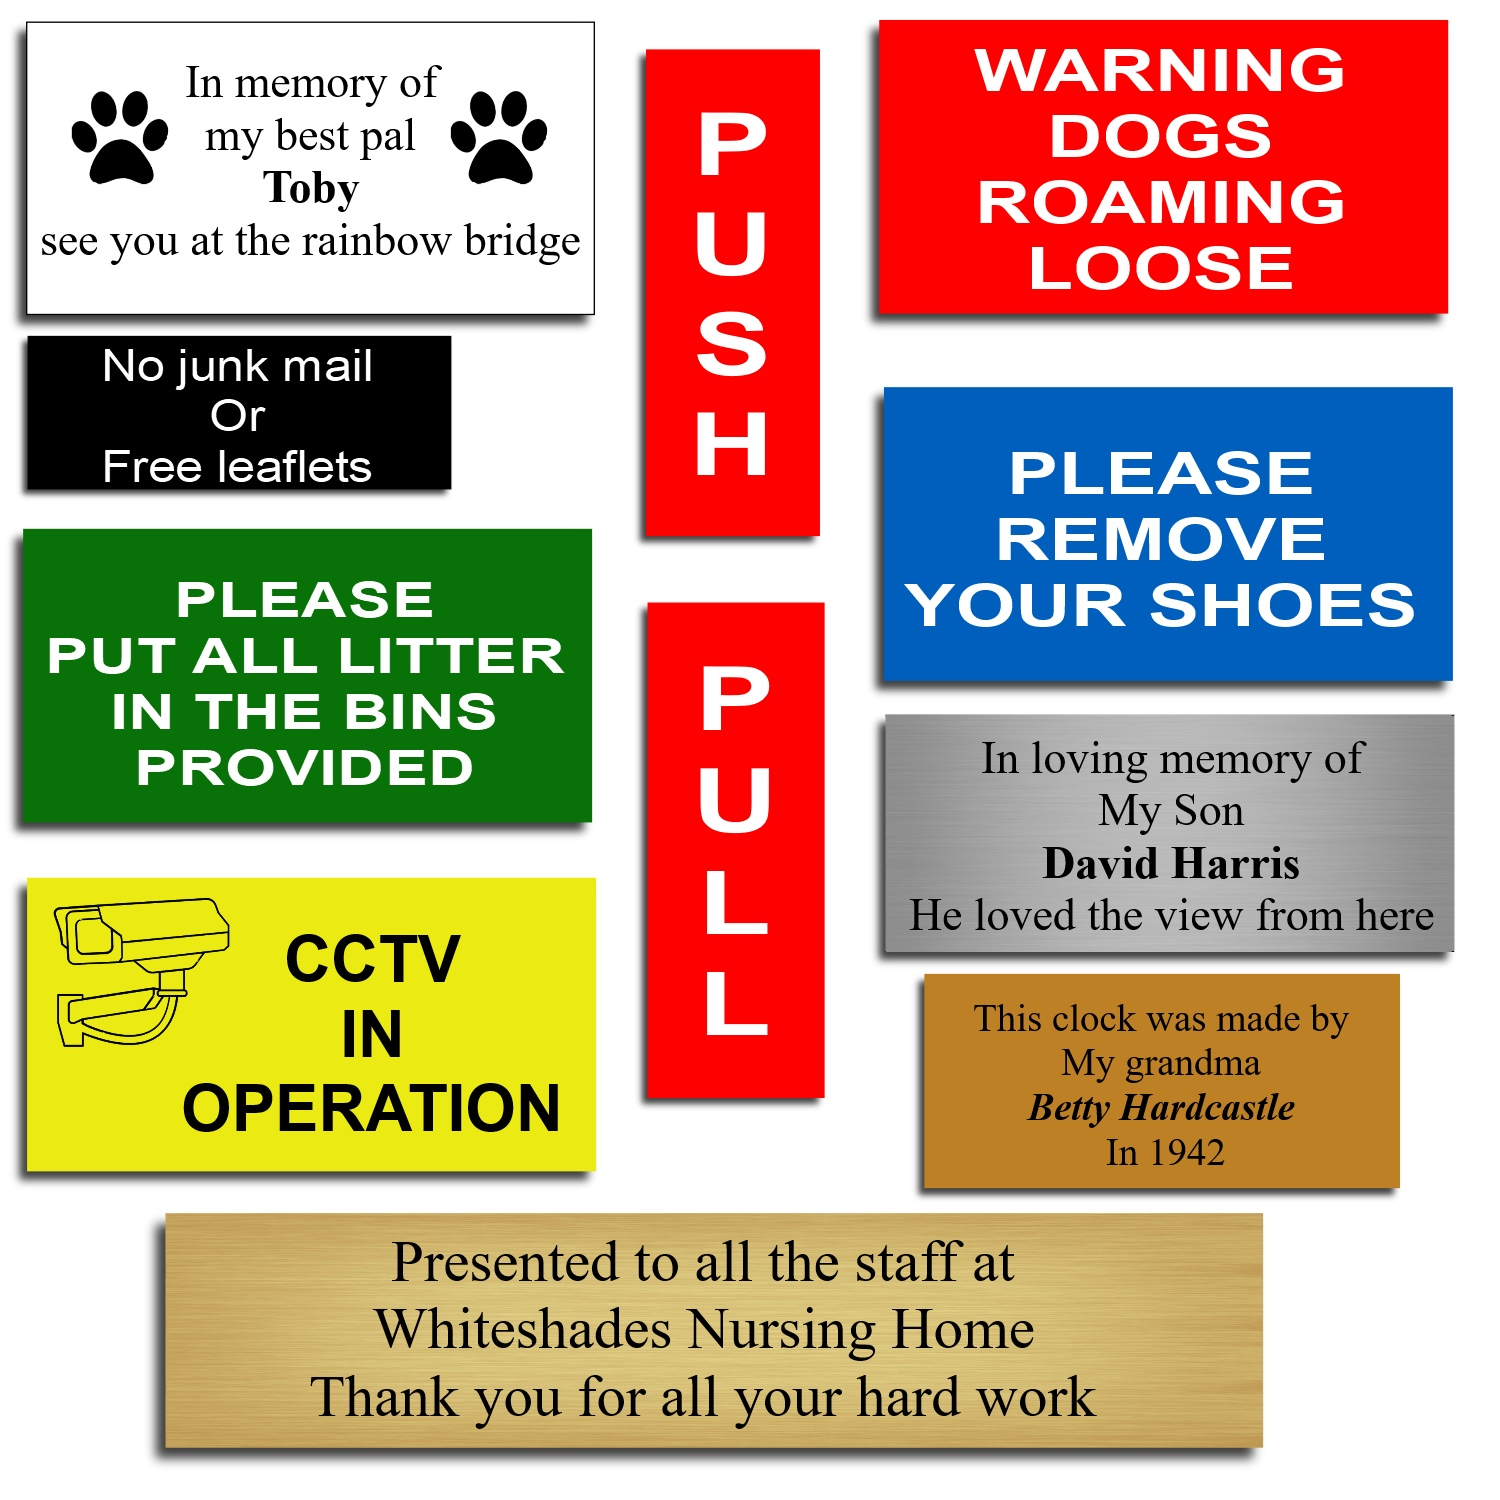 Laminate Plastic Signs